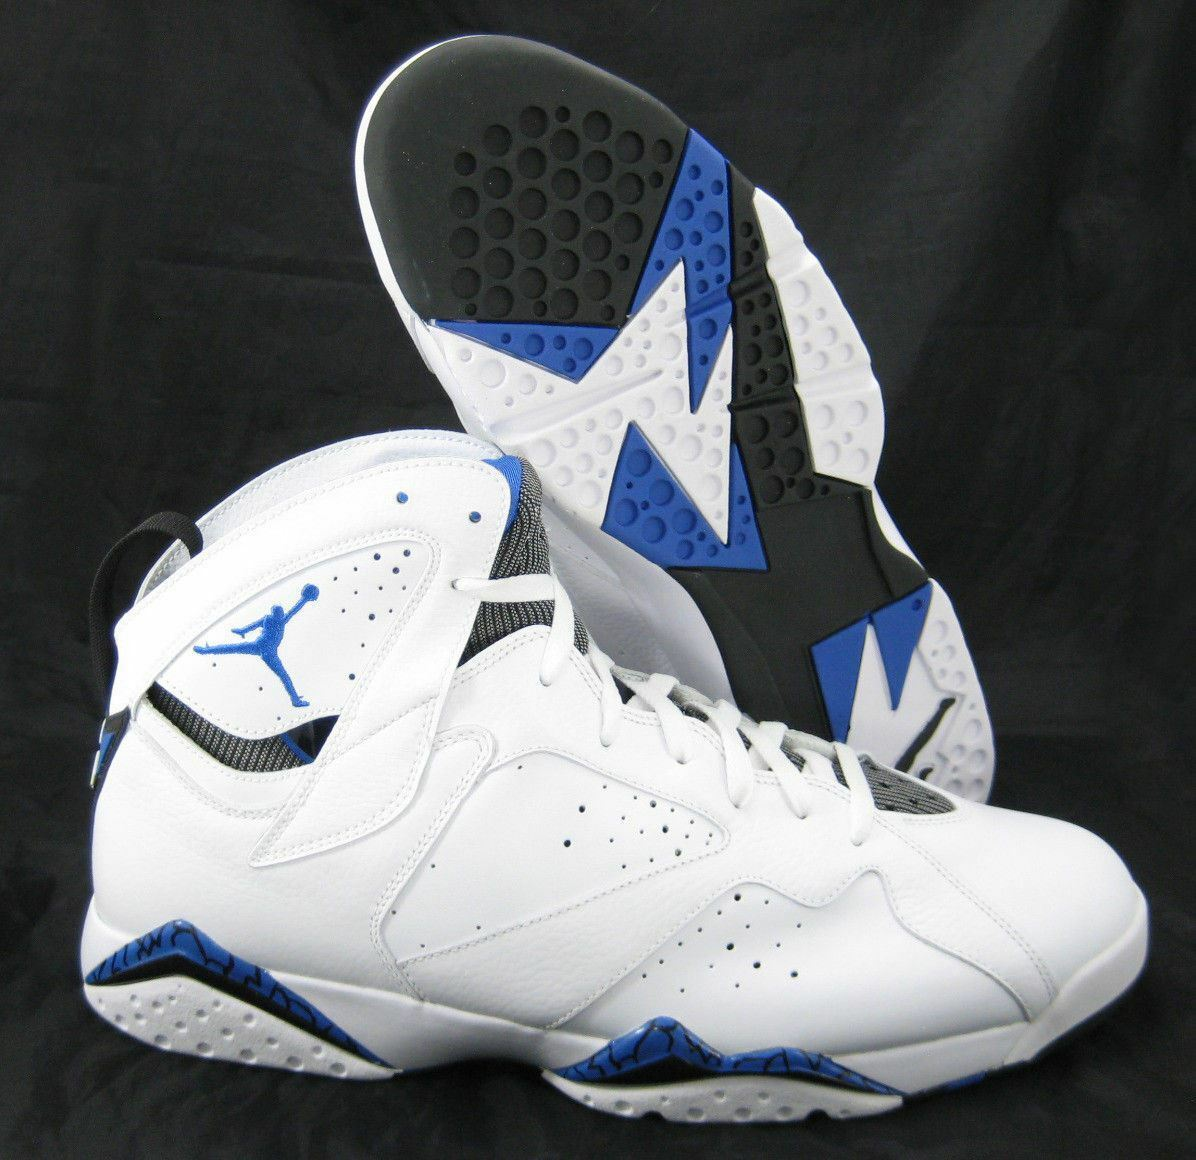 2009 Nike Air Jordan VII Retro 7 DMP Pack OG SZ 15 304775-161 Magic Royal bluee